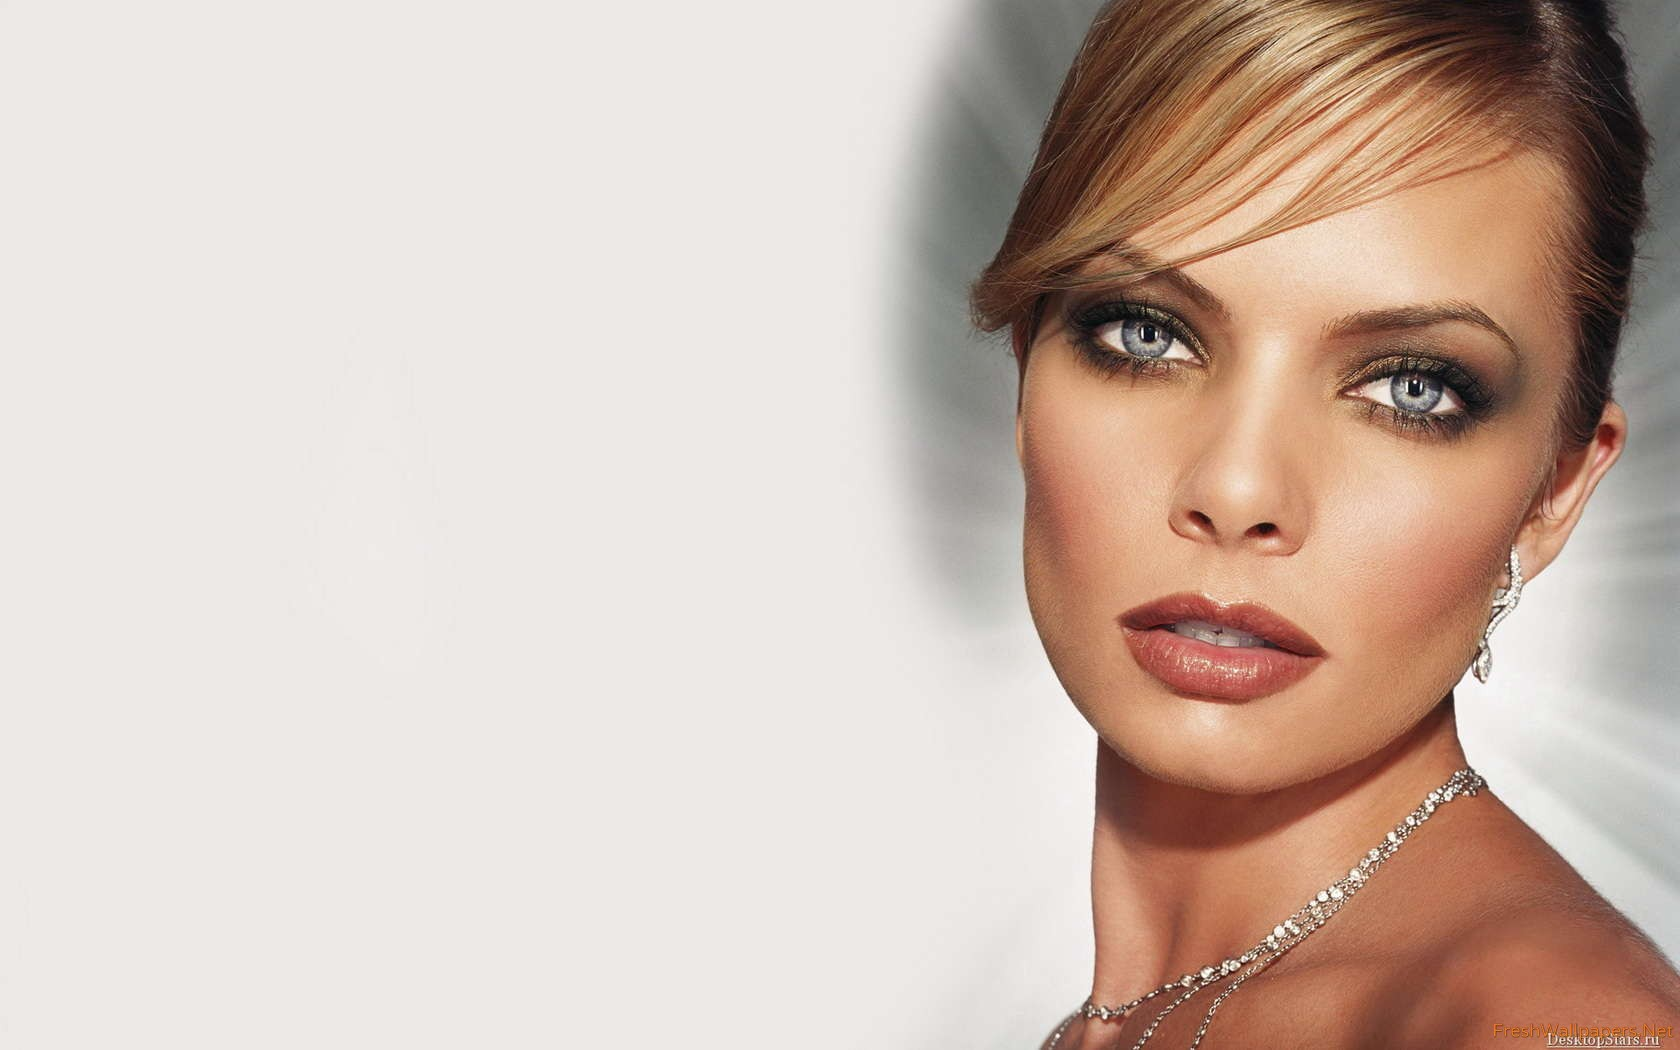 1680x1050 - Jaime Pressly Wallpapers 38